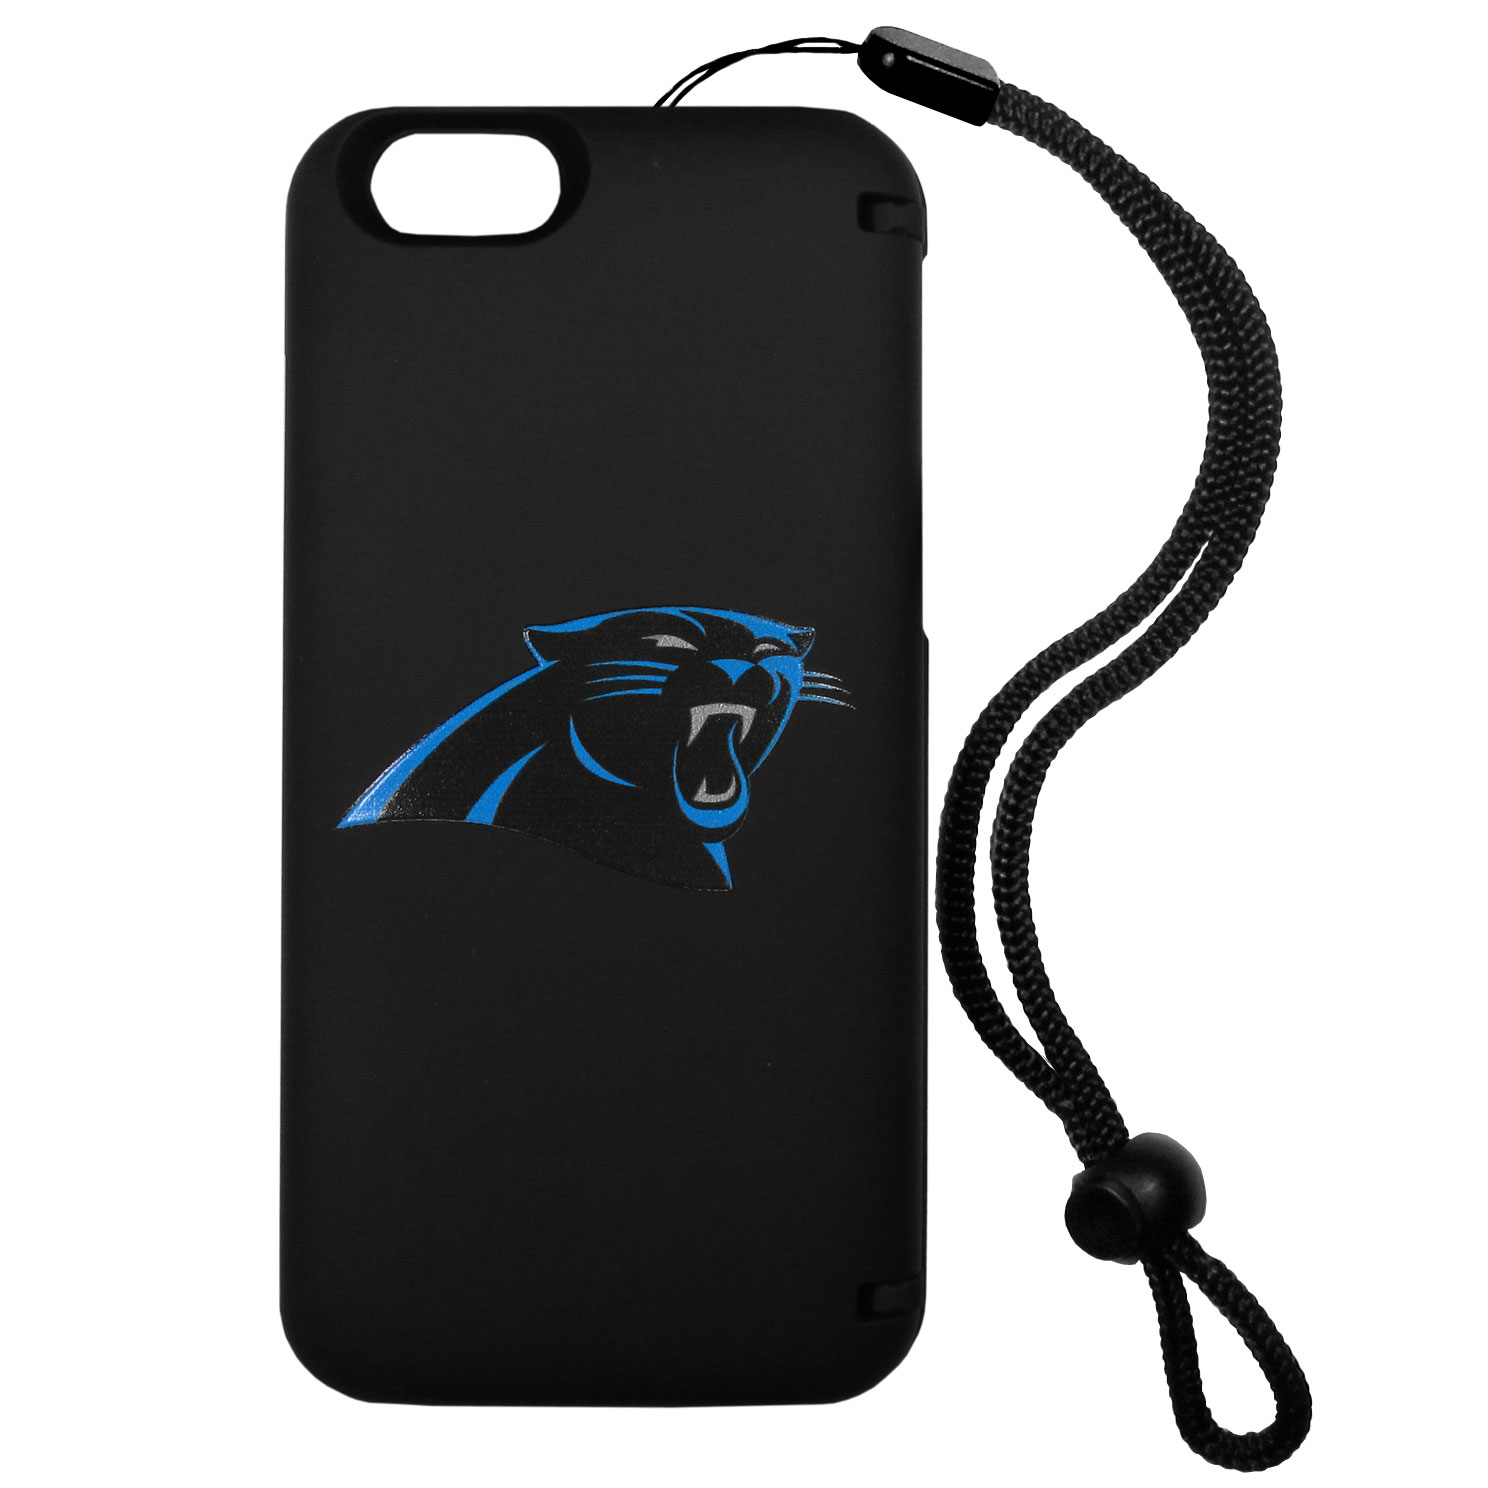 Carolina Panthers iPhone 6 Everything Case - This case really does have everything but the kitchen sink! The hidden compartment lets you keep your cards, money and tickets to the big game safe and secure and has a compact mirror so you can make sure your game face is ready to go. It also comes with a kickstand to make chatting and watching videos a breeze. The wrist strap allows you to travel with ease with your everything case. If that's not enough, it also comes with the Carolina Panthers logo printed in expert detail on the front.